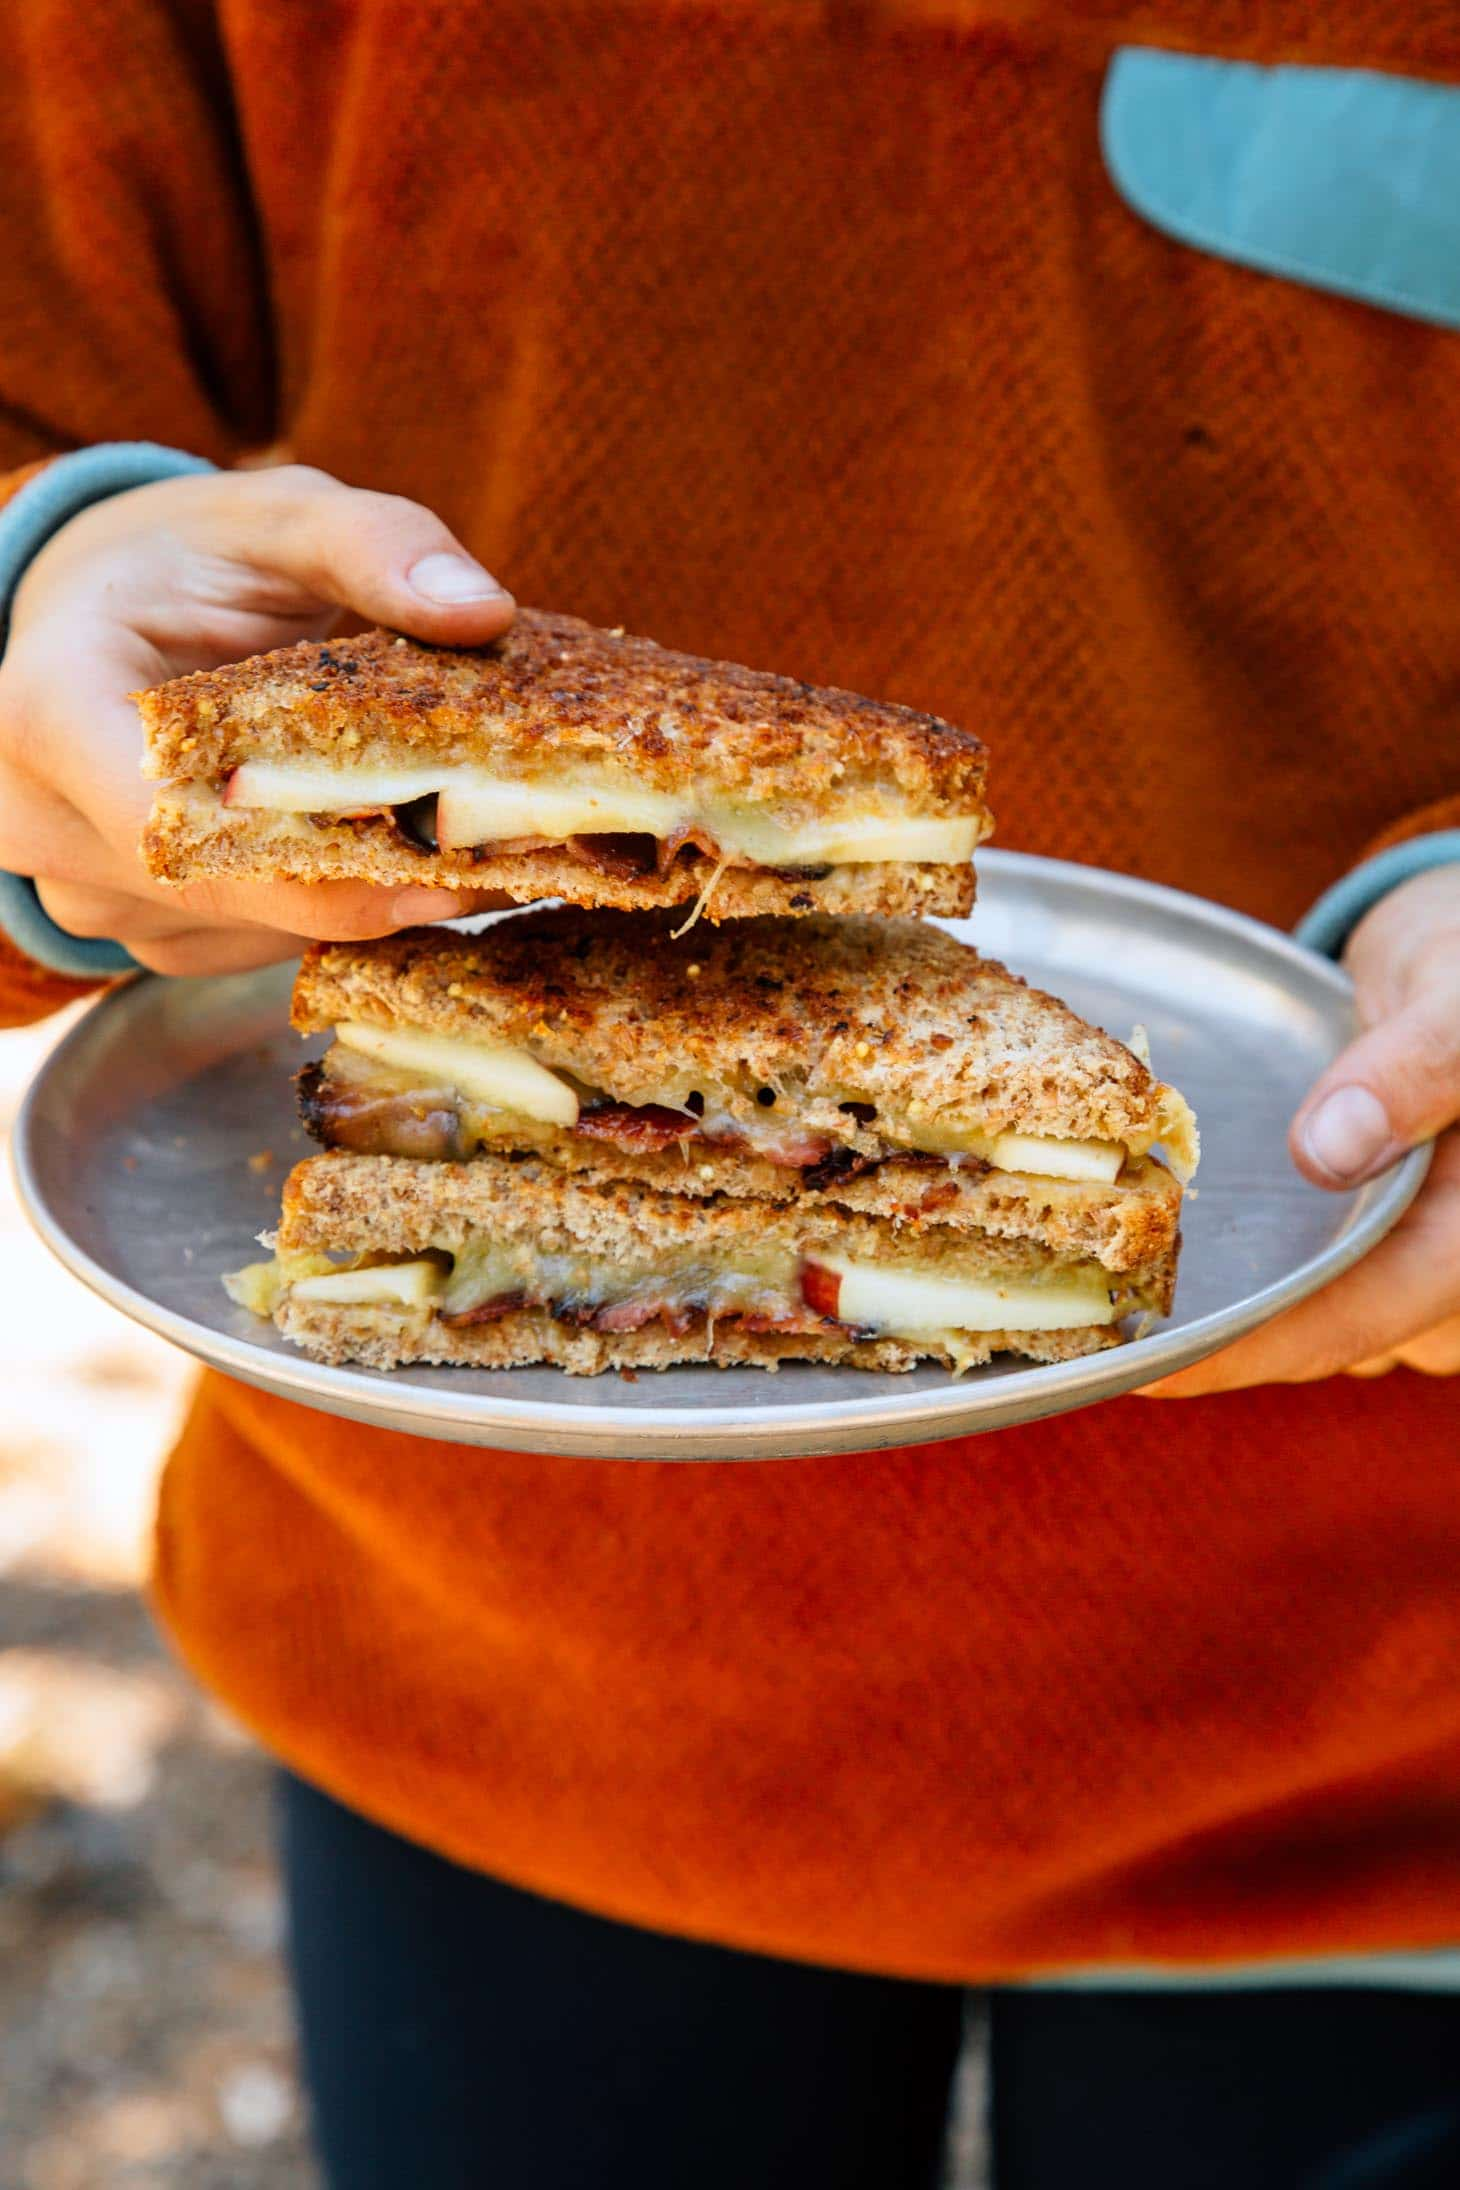 Holding an apple cheddar grilled cheese sandwich.